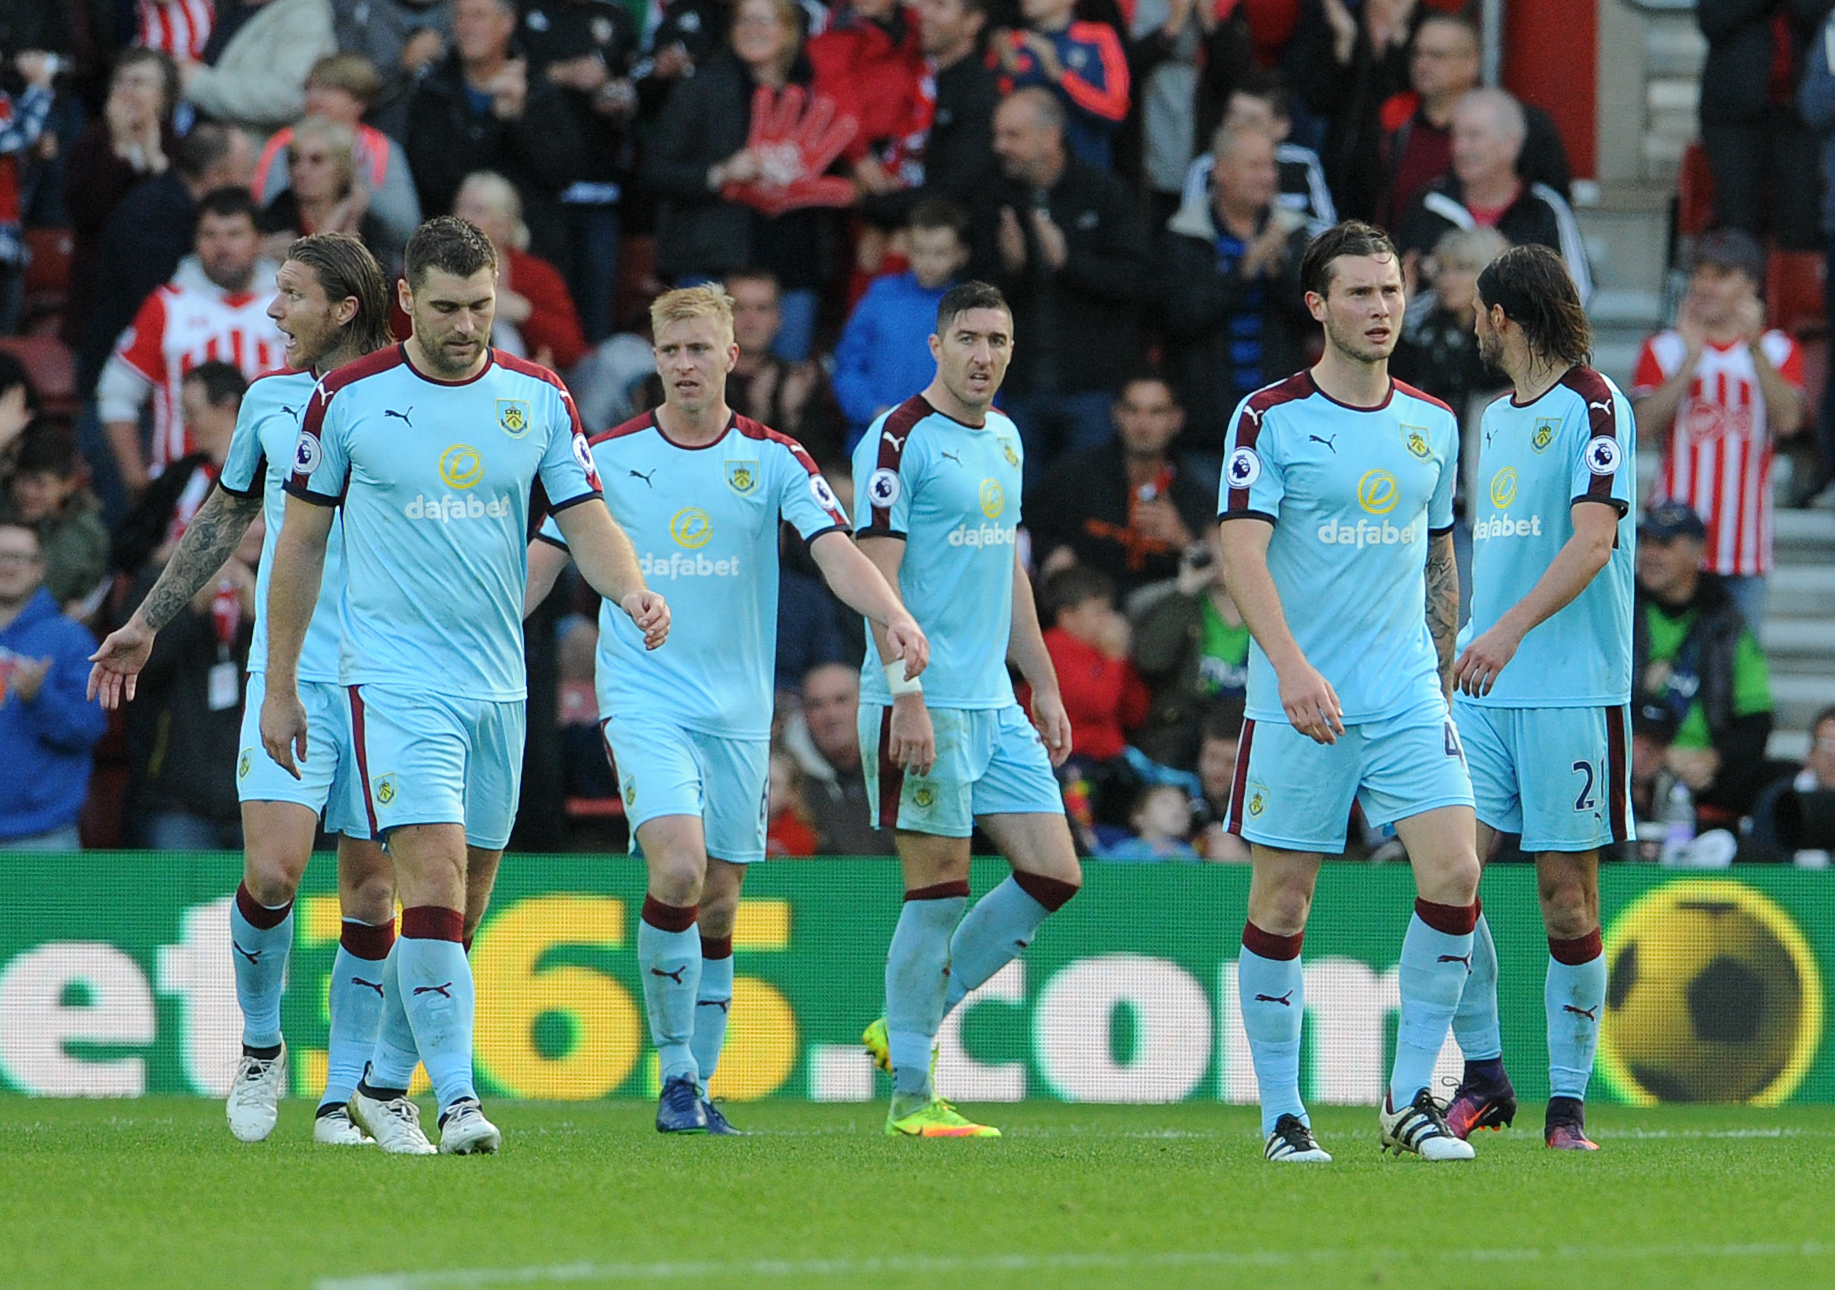 Burnley were well beaten at Southampton just over a year ago